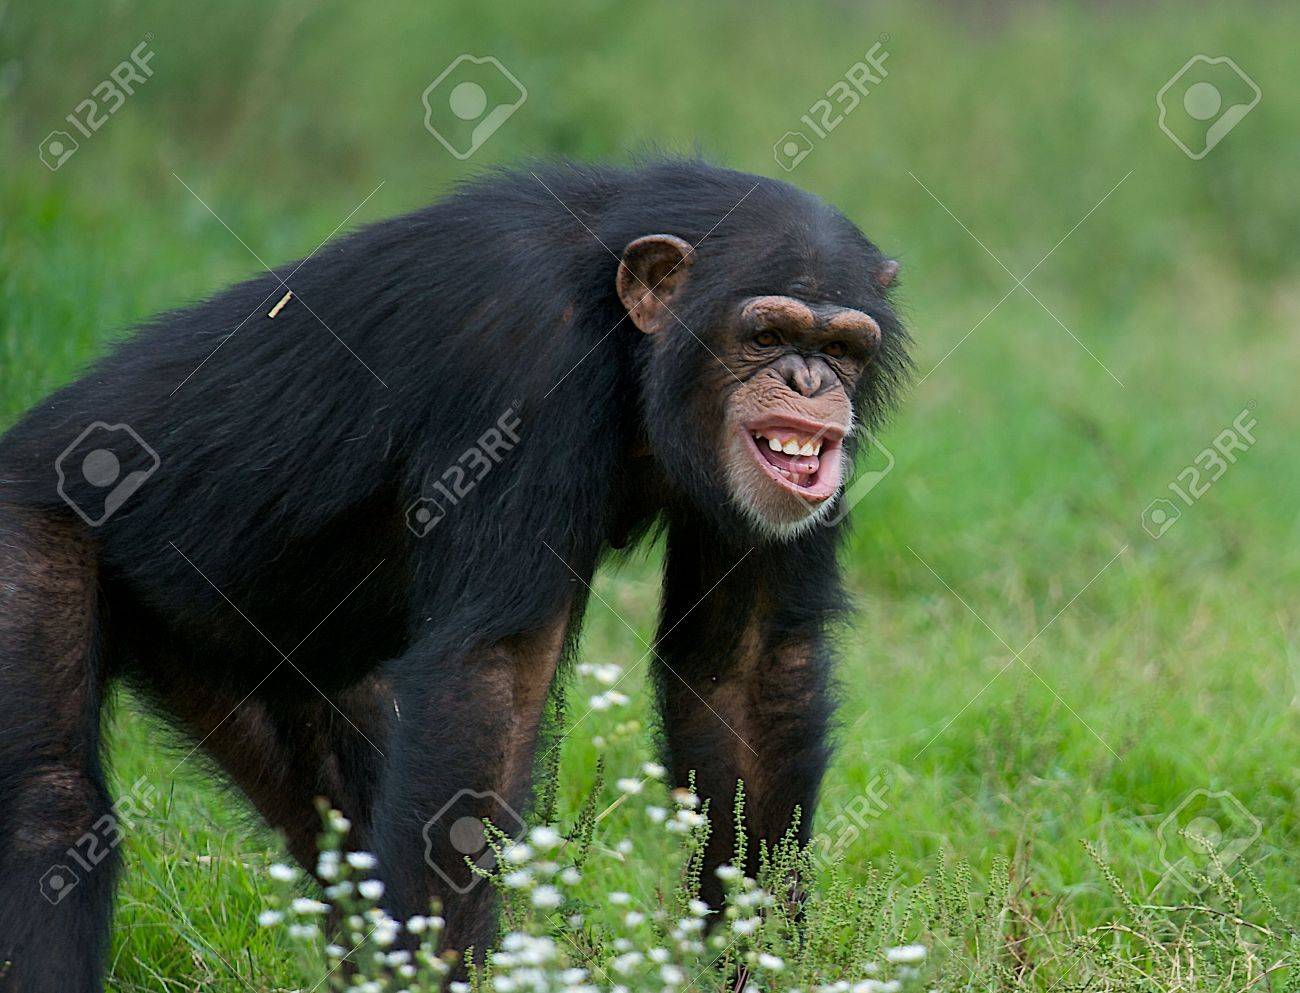 funny chimpanzee in the grass with a very strange expression stock